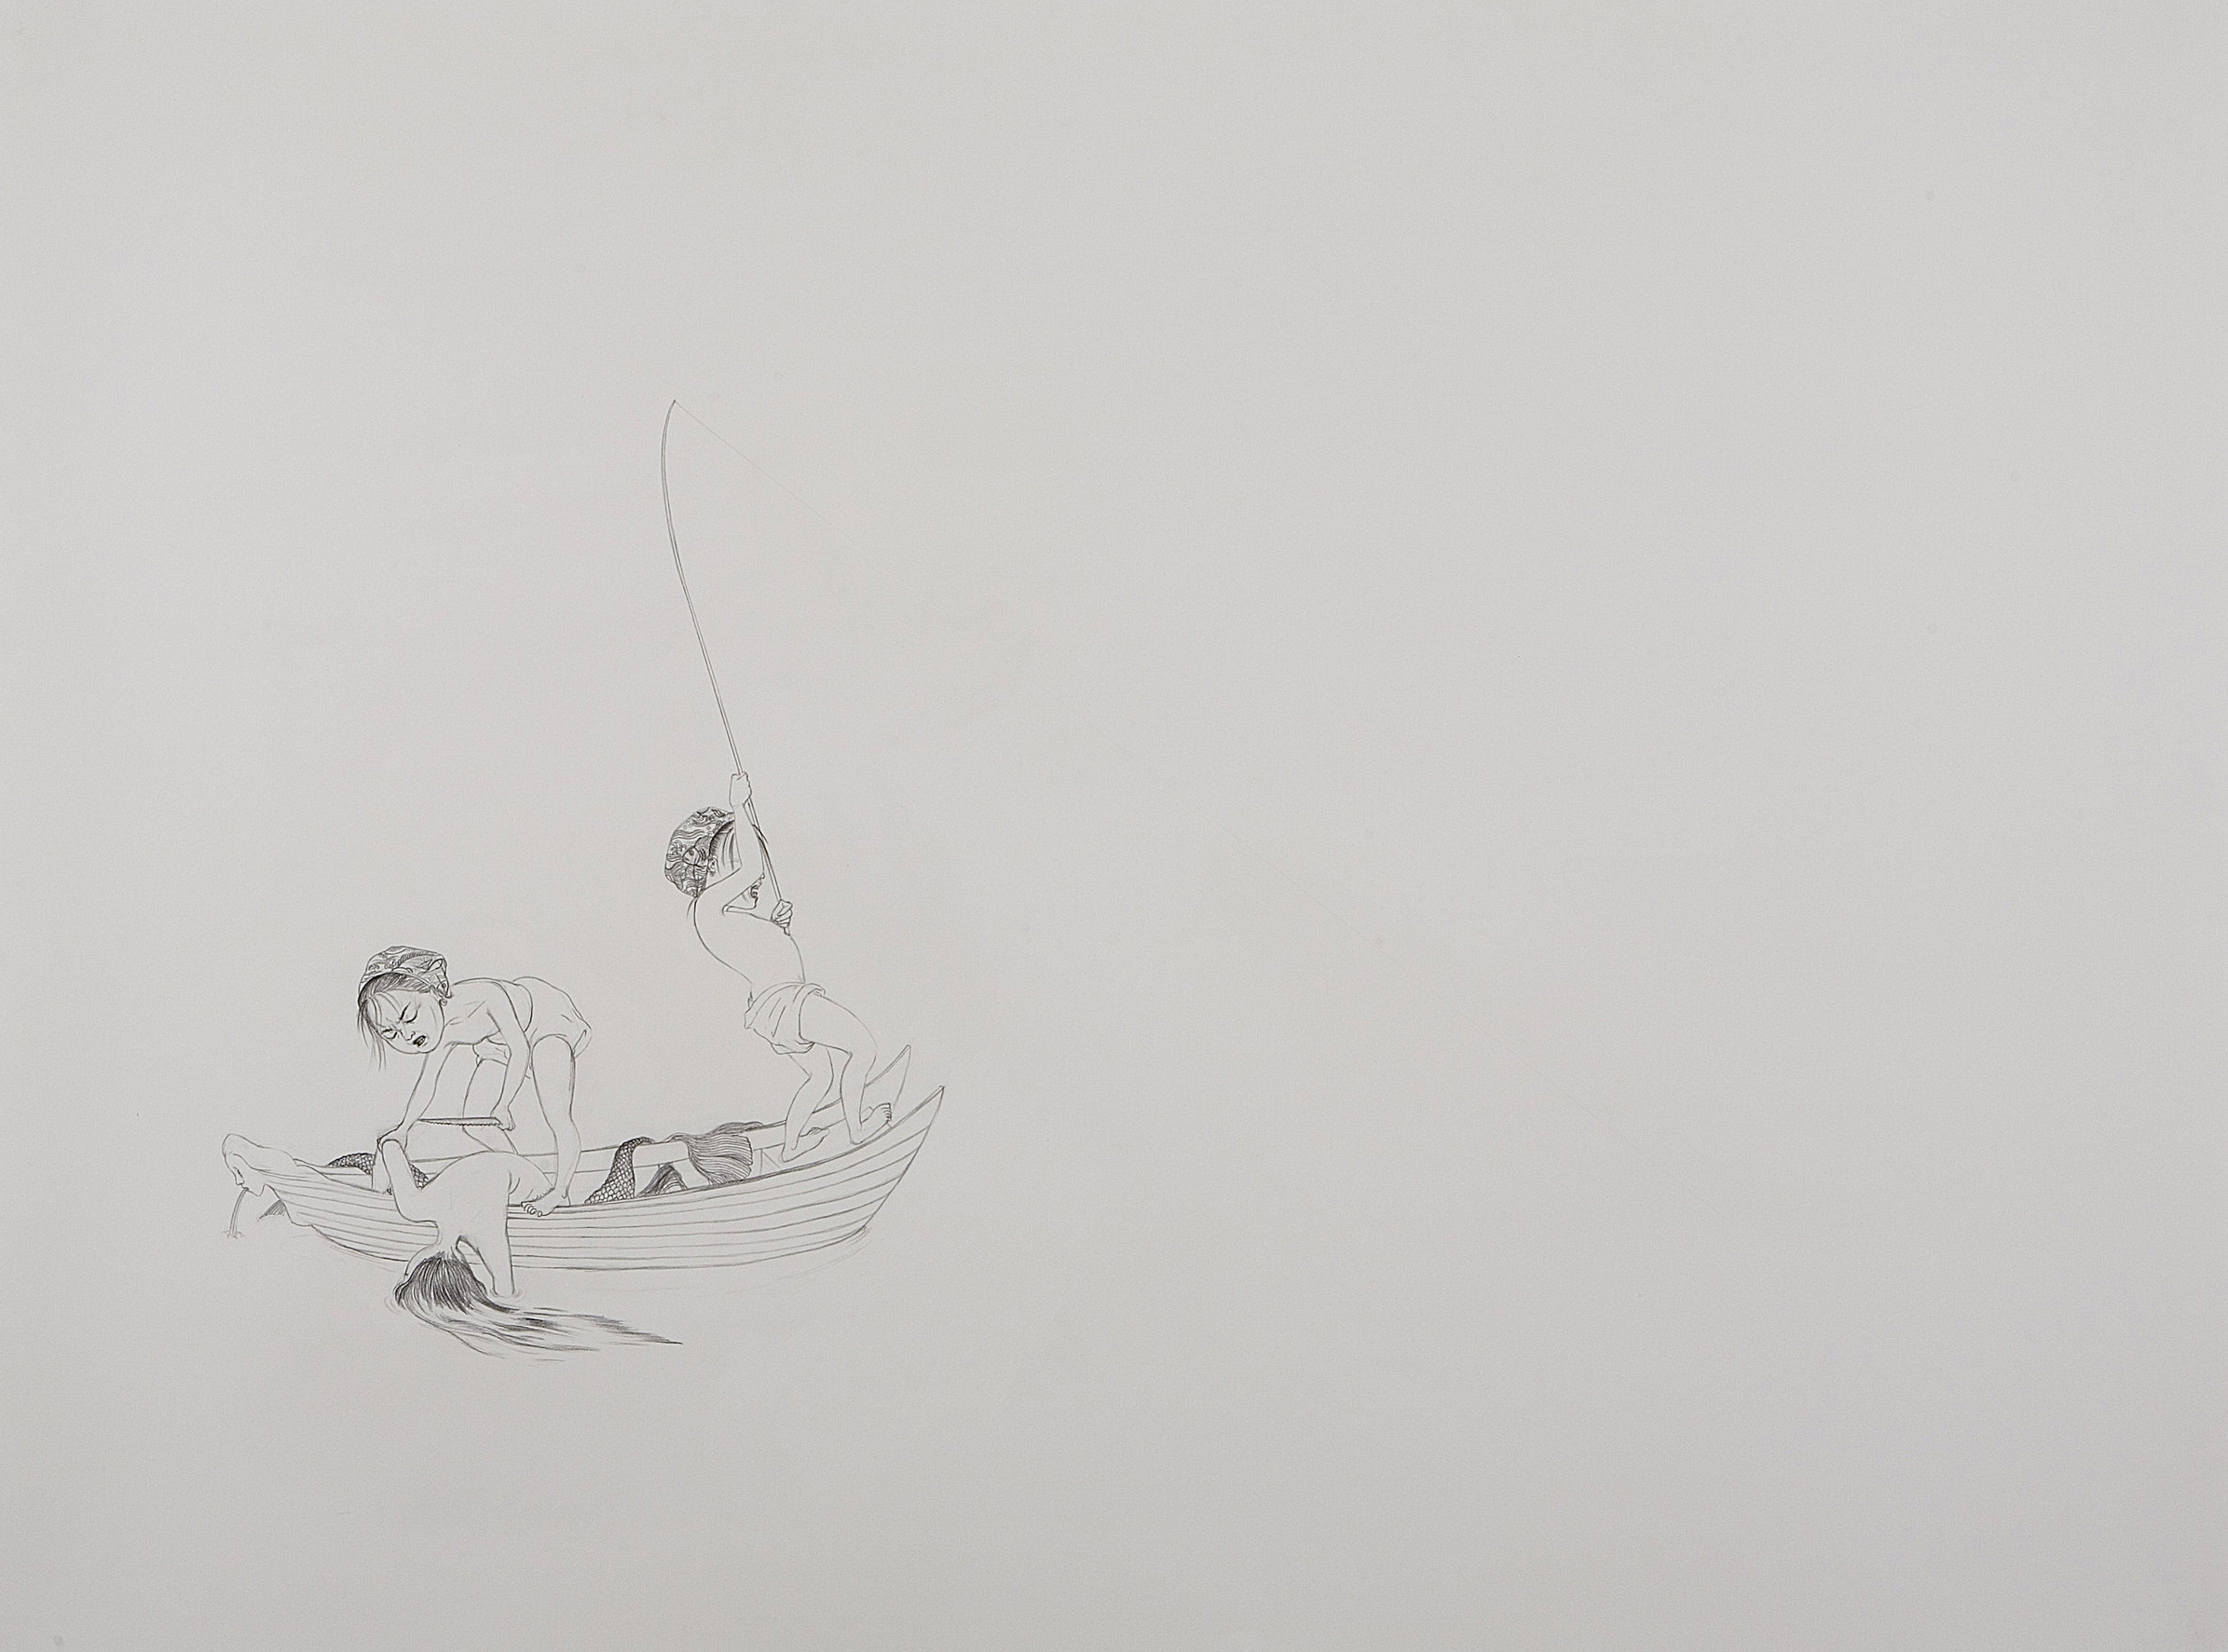 Surface Tension Series I: Big Catch , 2007 Graphite on paper 38 X 50 inches Private collection